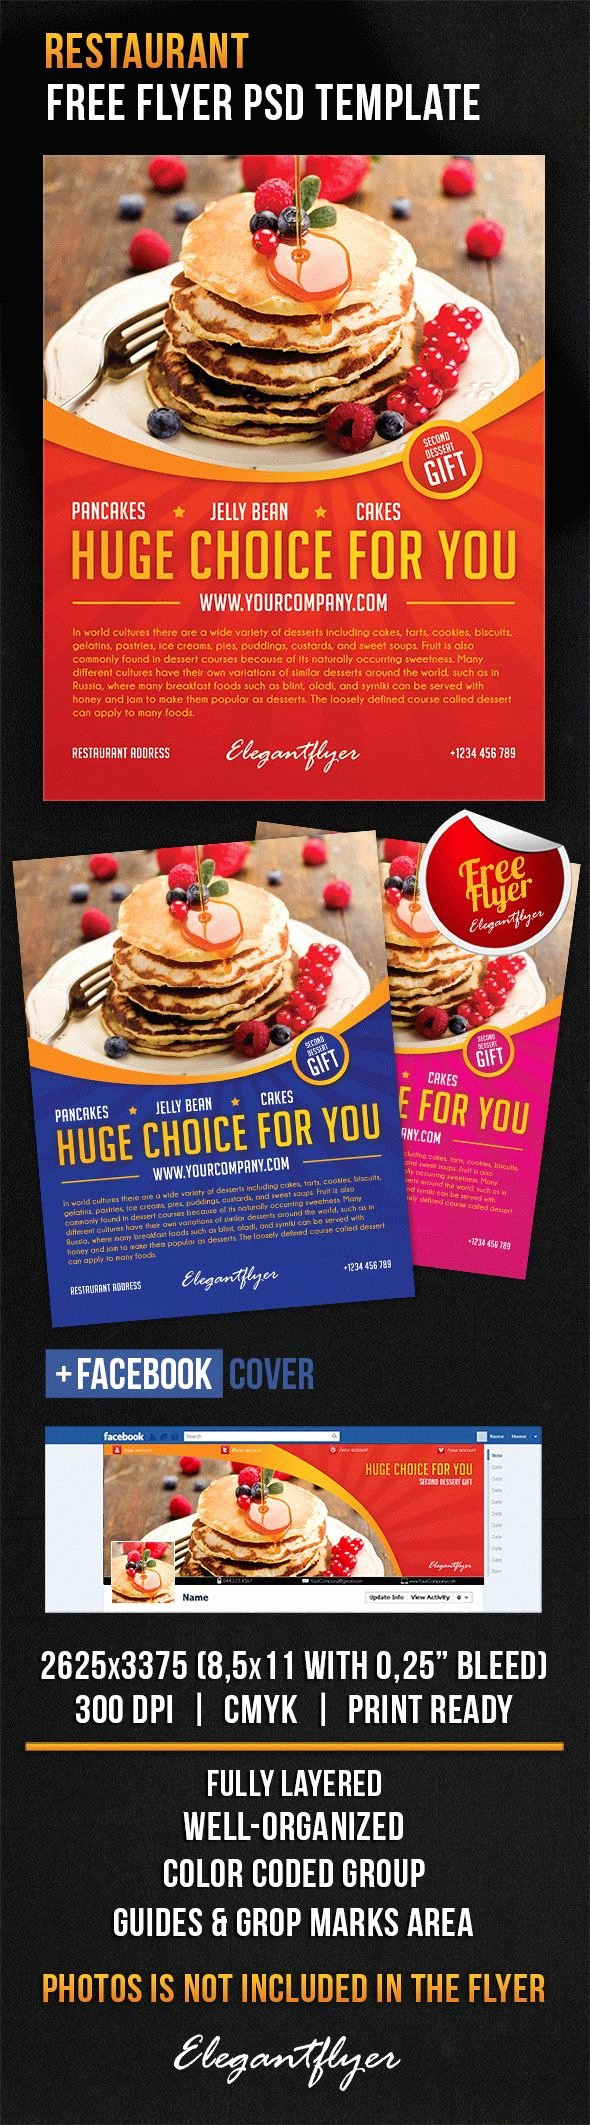 Restaurant Flyer Template Free Awesome Restaurant – Free Flyer Psd Template – by Elegantflyer